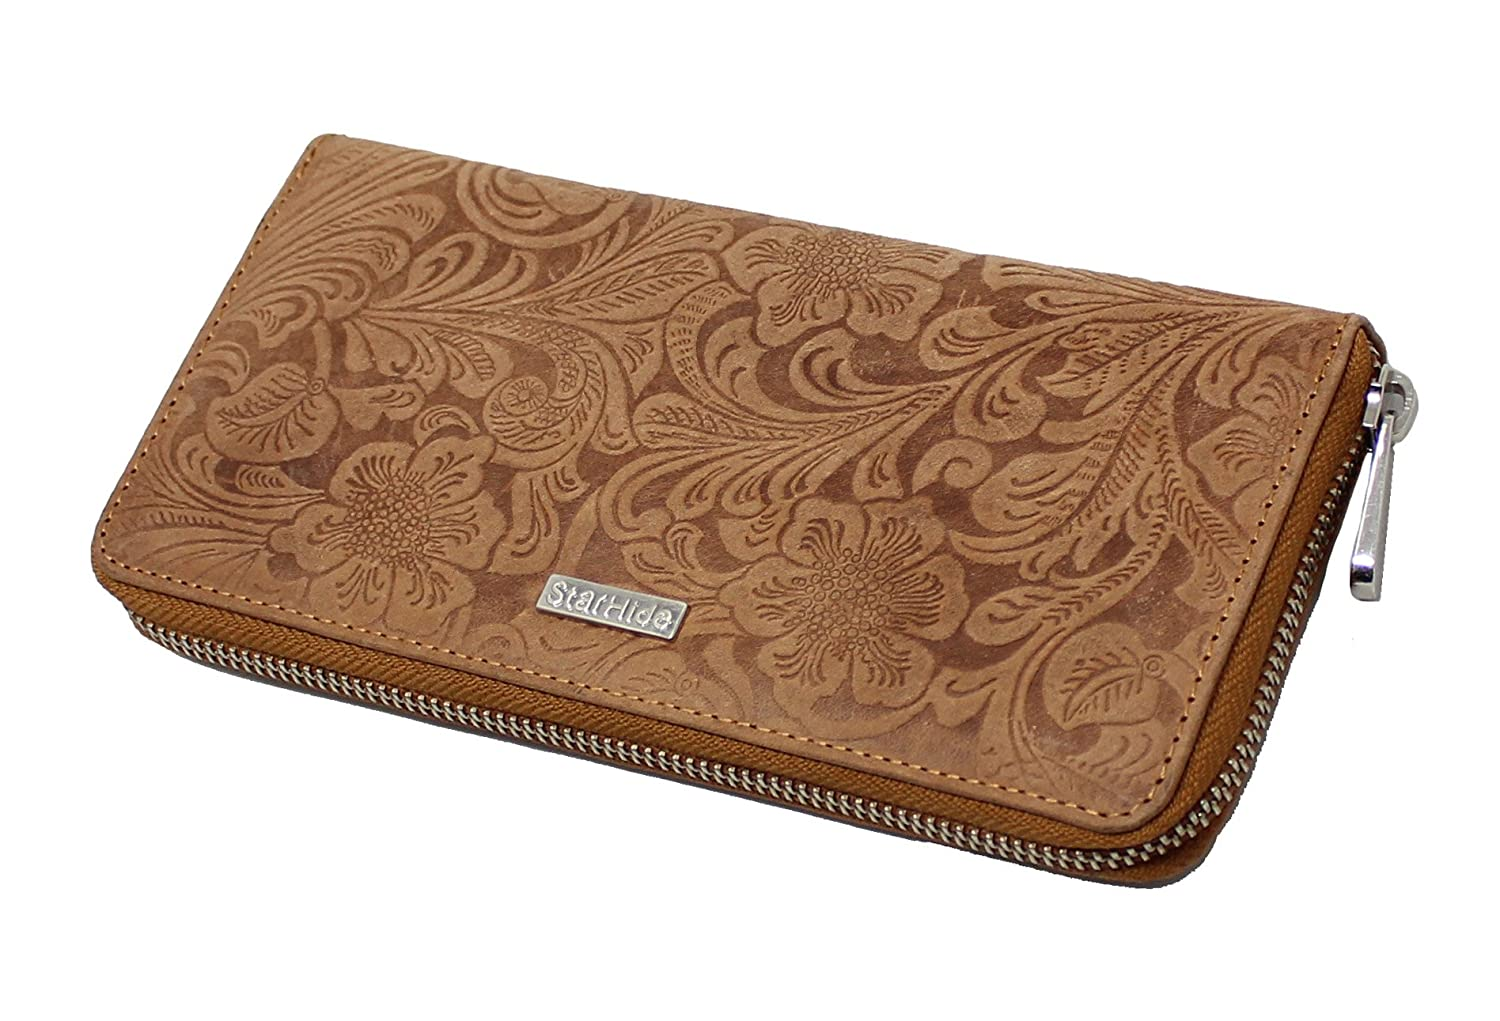 Women RFID Blocking Embossed Floral Wallet Purse Distressed Leather 5590